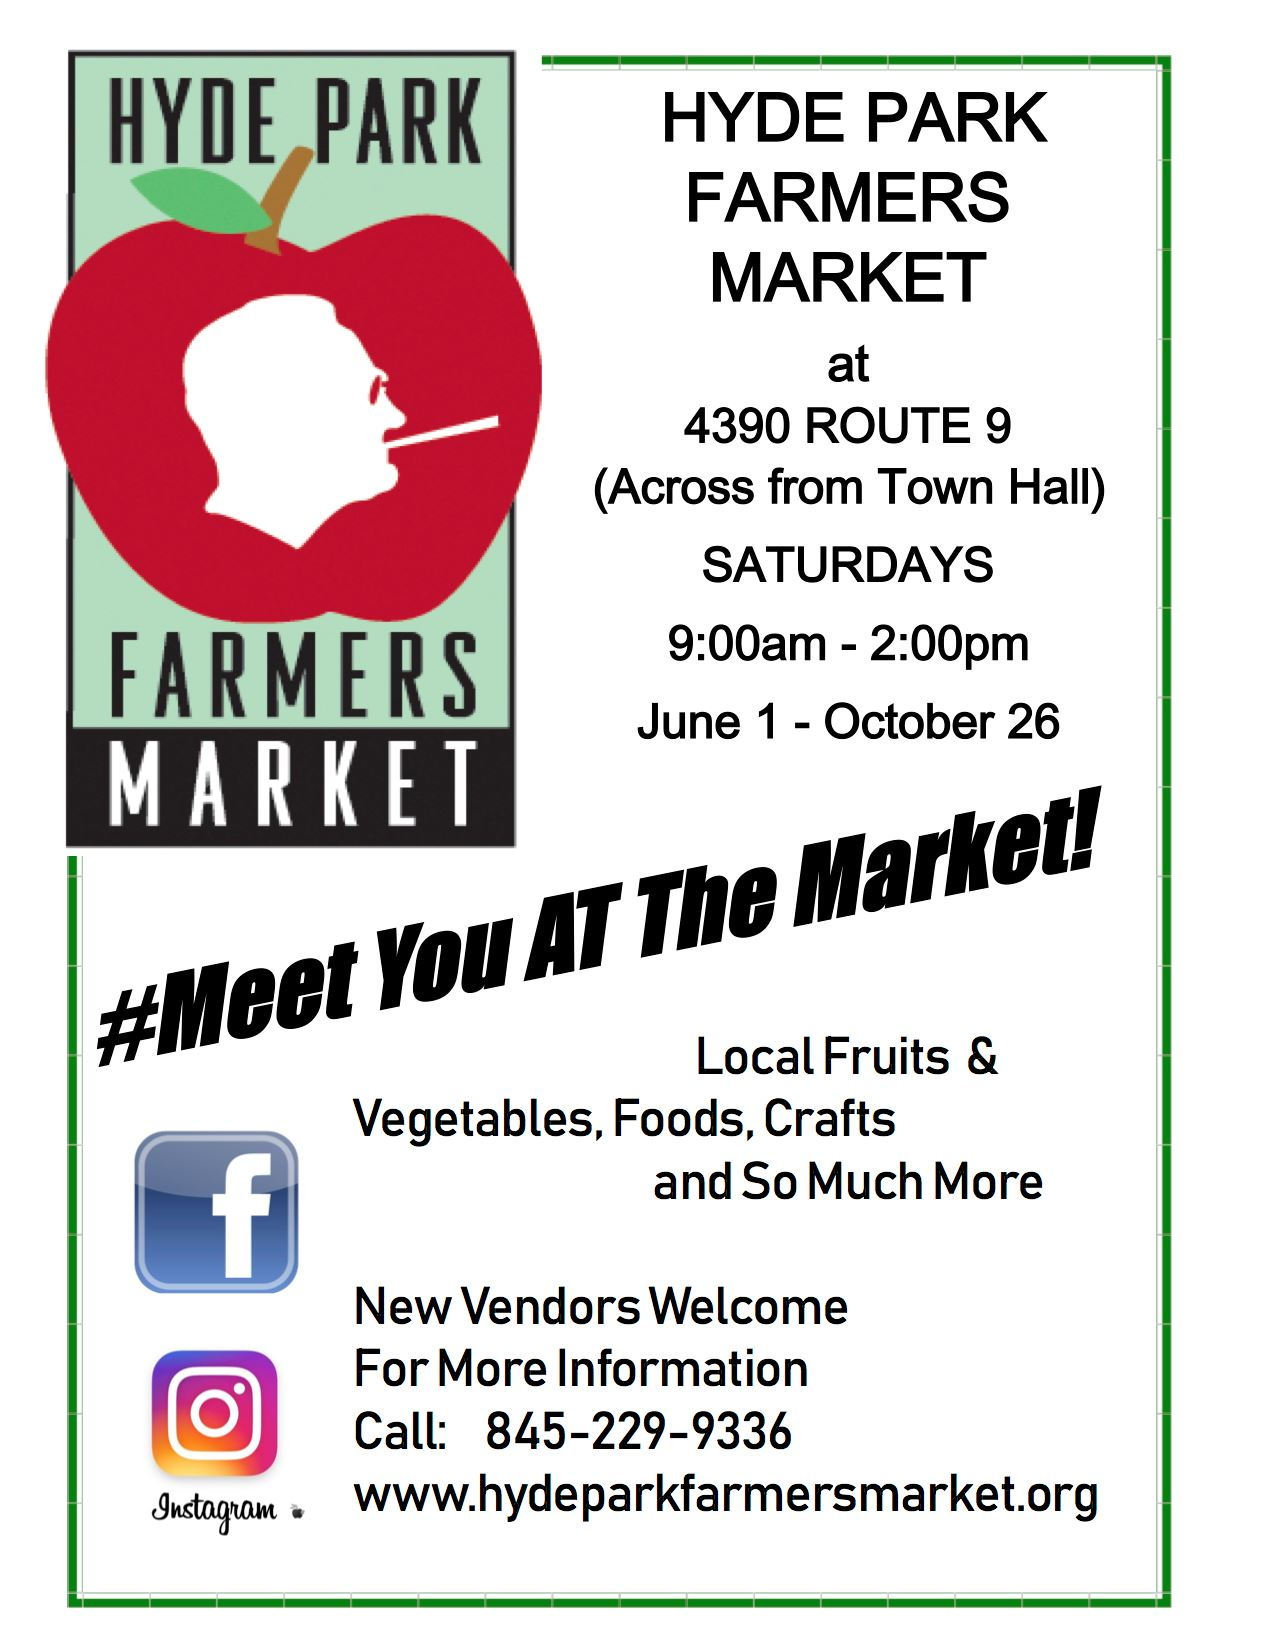 HYDE PARK FARMERS MARKET POSTER